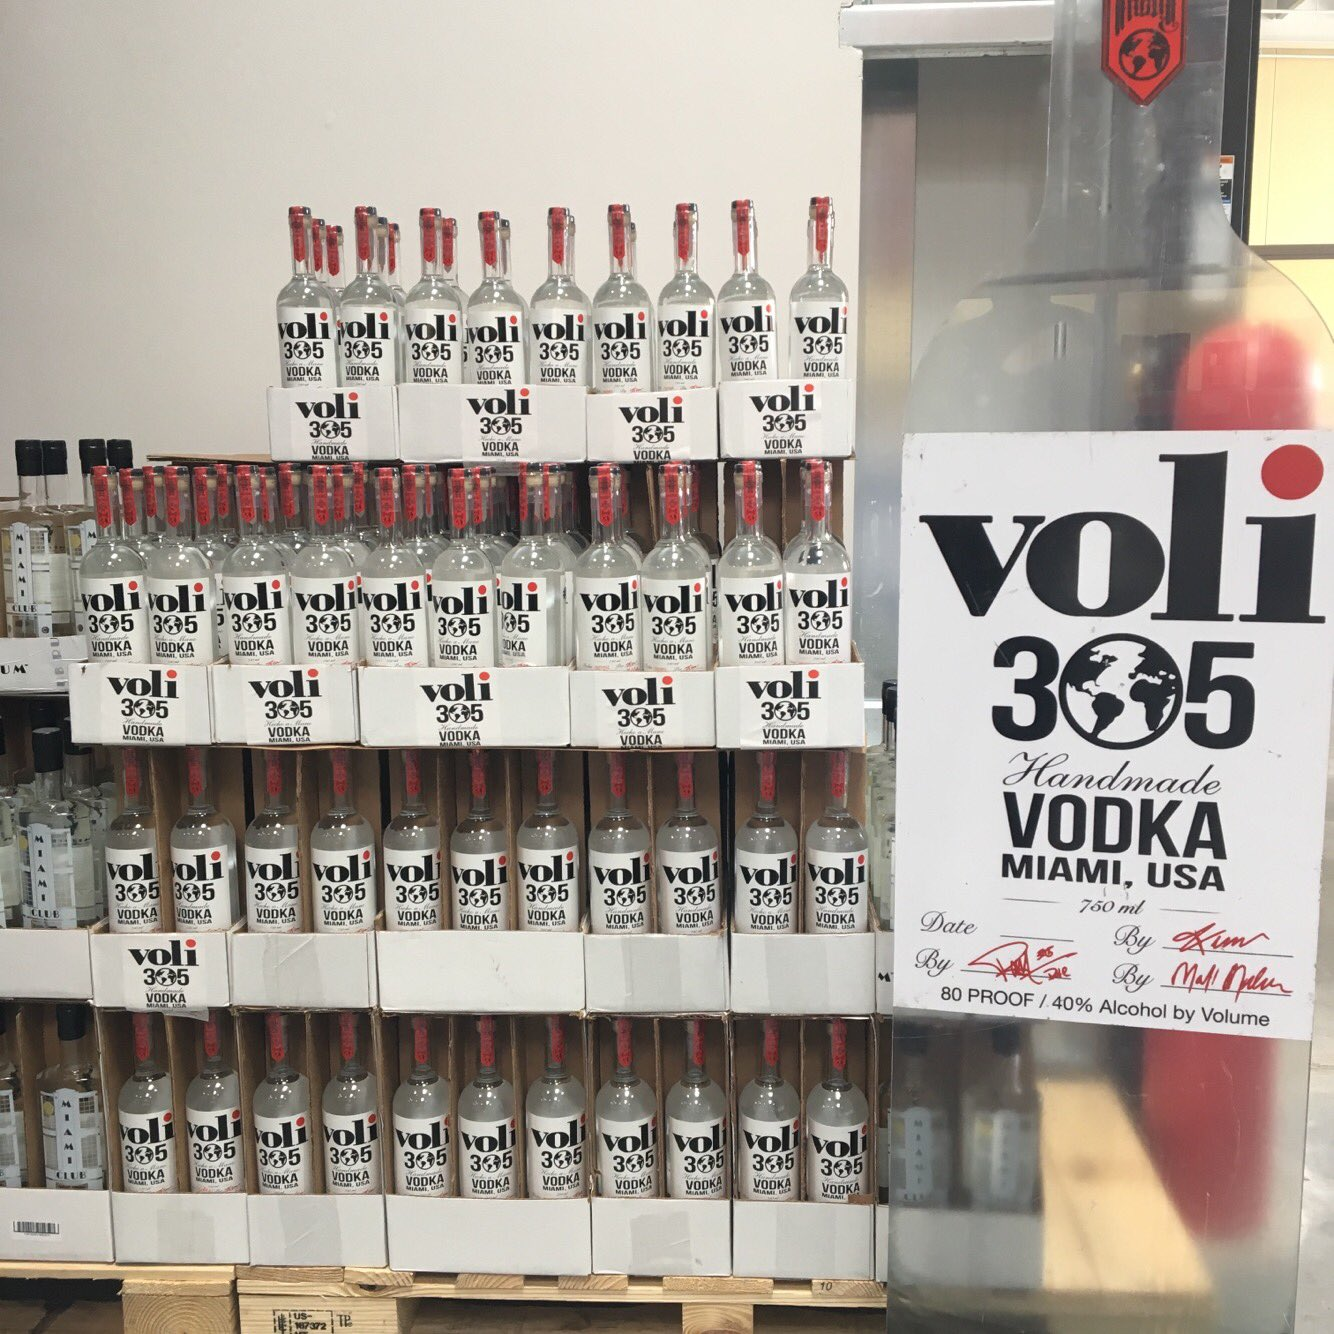 Thank you Costco for being one of the first to believe in @Voli305Vodka appreciate the opportunity. https://t.co/L0xIaKerm2